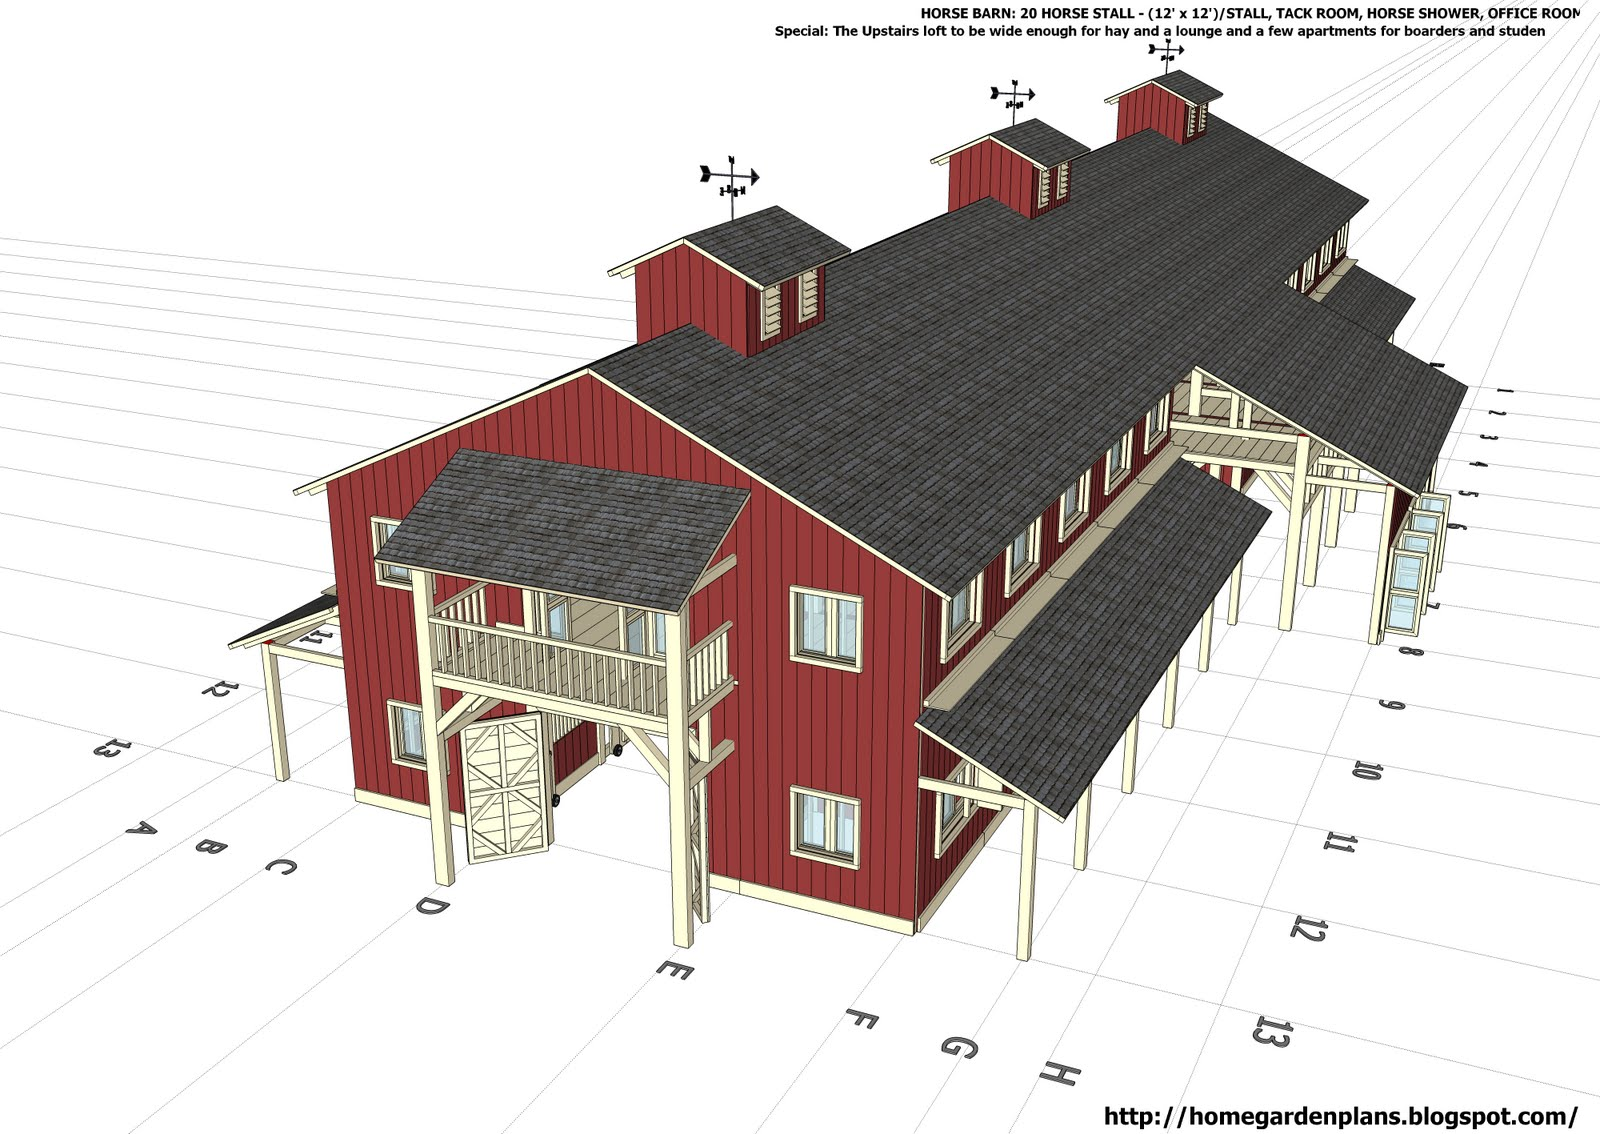 Nosecret more 12 x 10 storage shed plans free for House horse barn plans